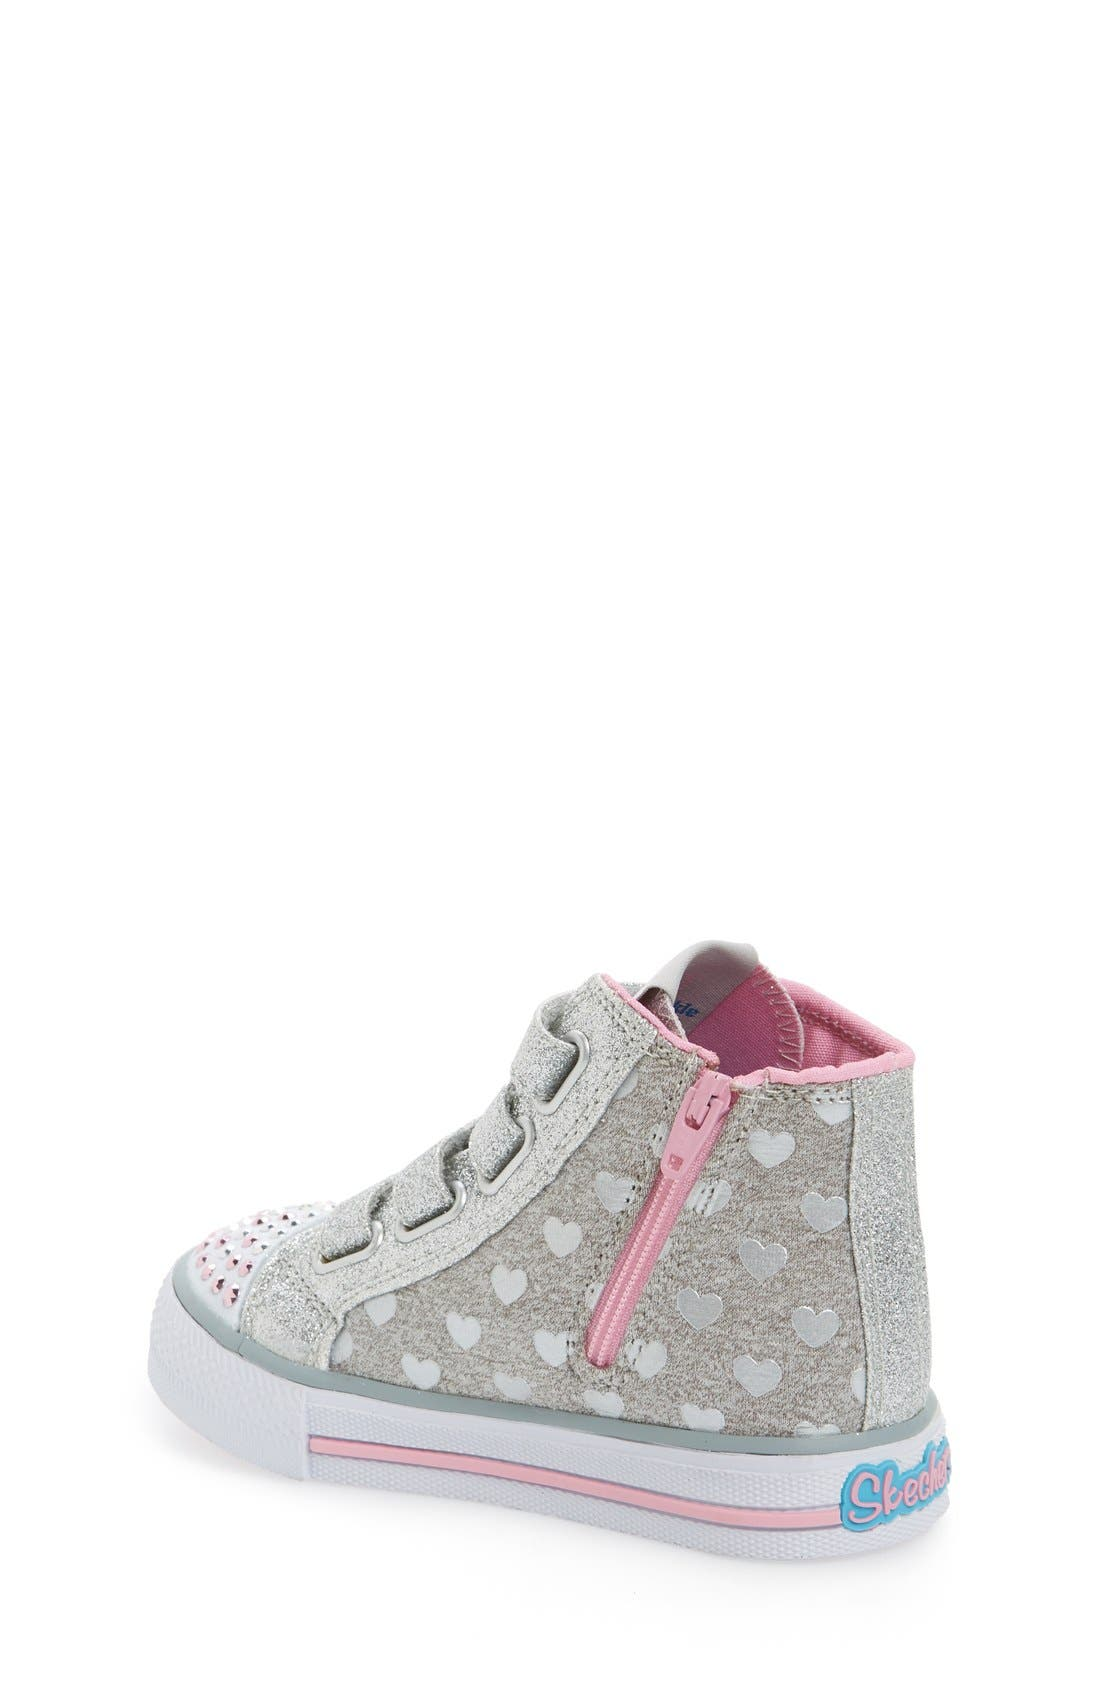 'Twinkle Toes - Shuffles' High Top Sneaker,                             Alternate thumbnail 4, color,                             596